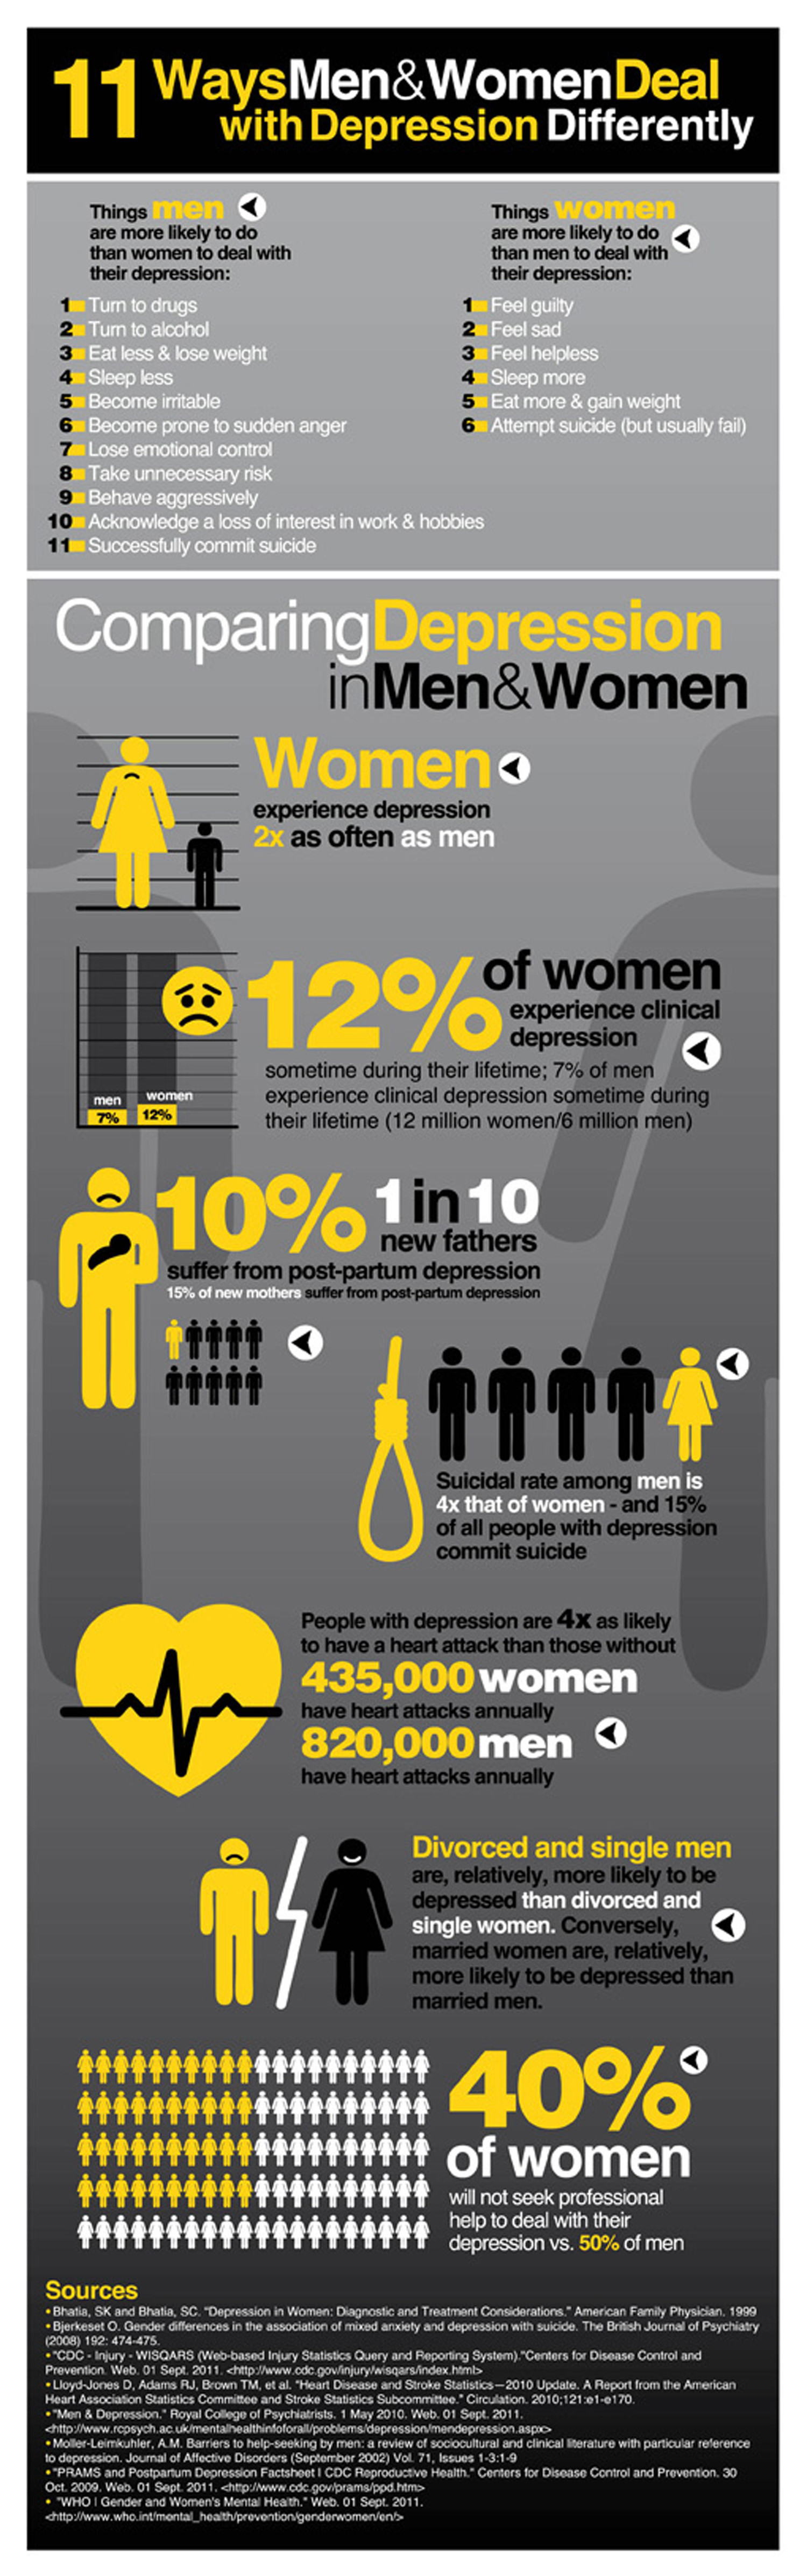 11 Ways Men & Women Deal with Depression Differently Infographic